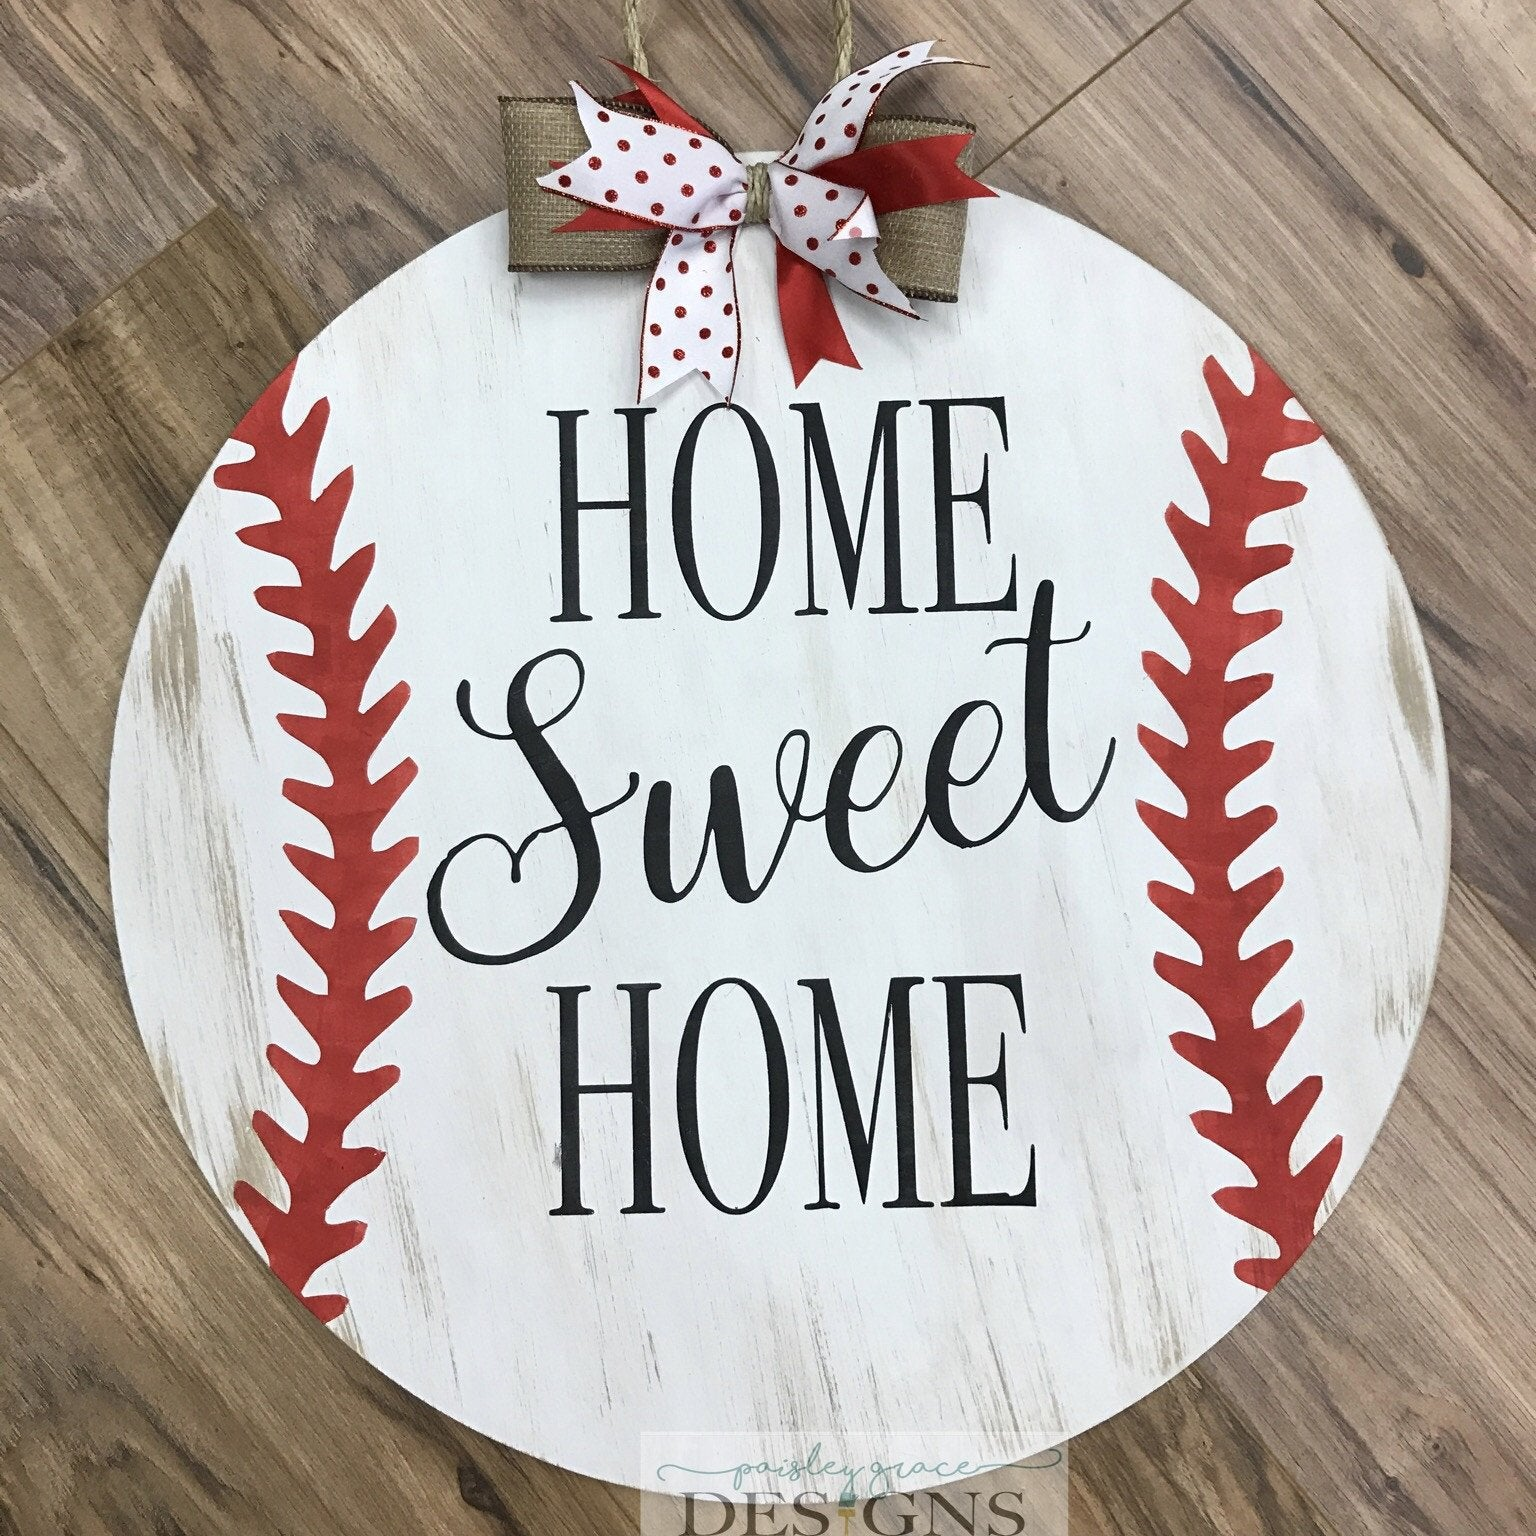 HOME SWEET HOME BASEBALL FLAT TOP CIRCLE: DOOR HANGER DESIGN